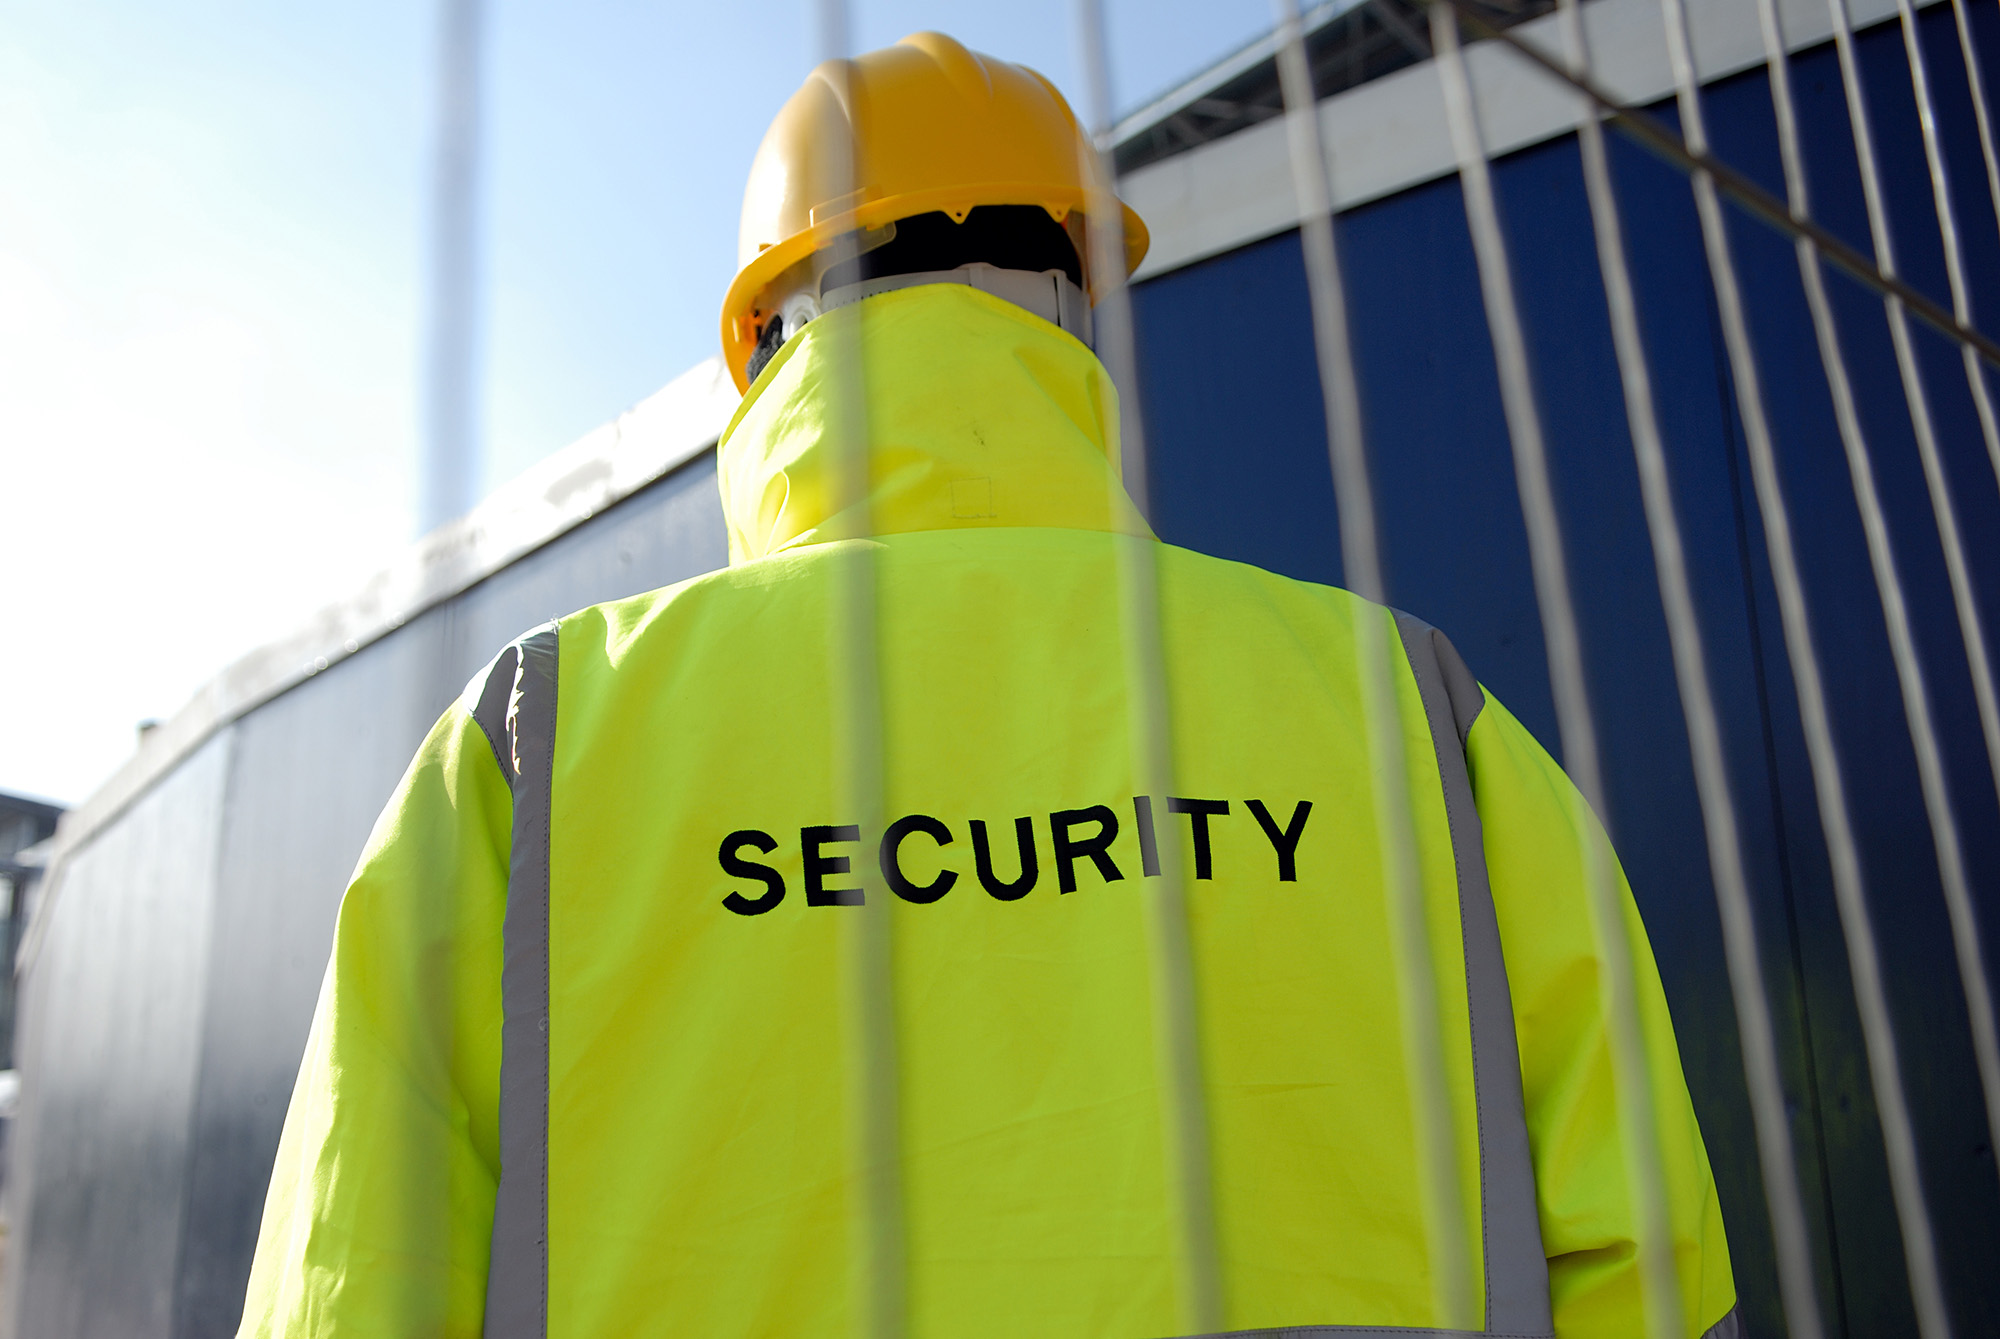 Security tax refunds